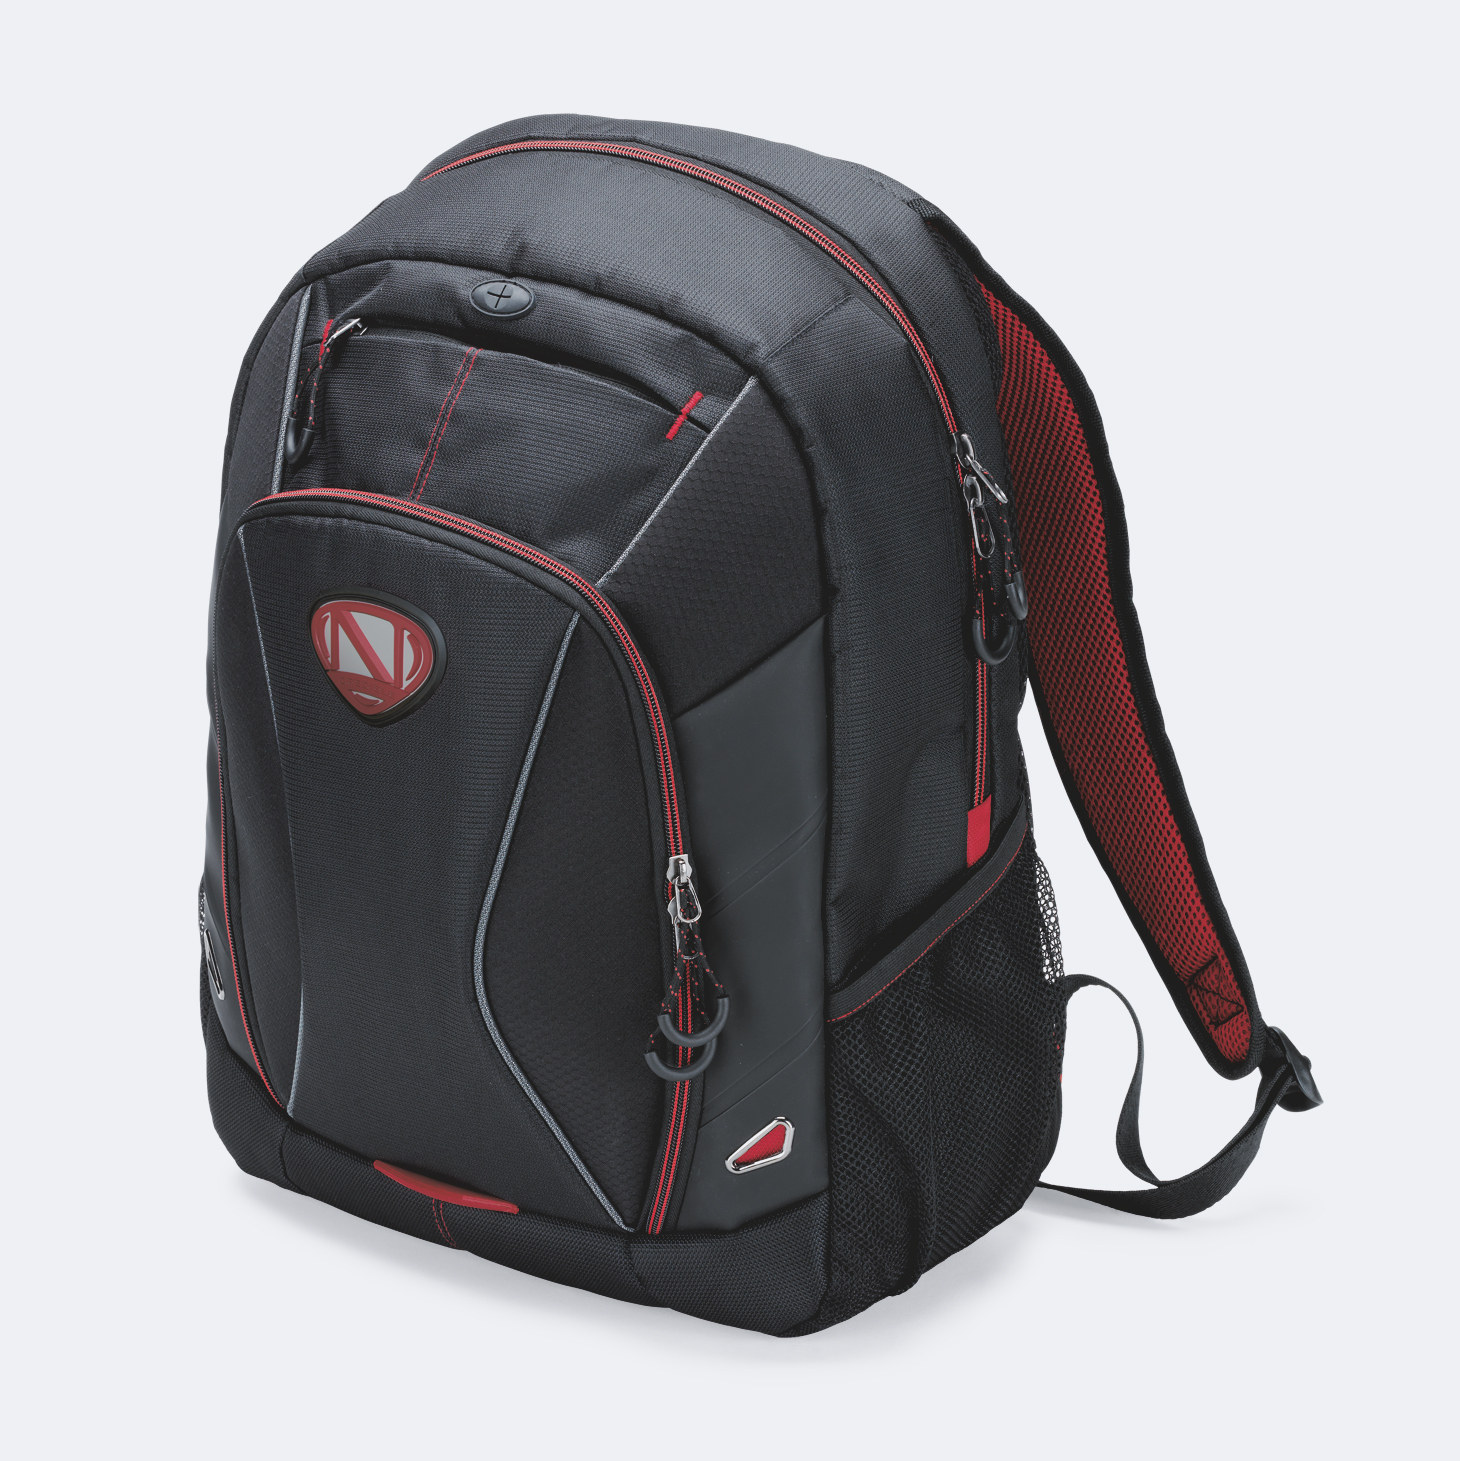 Laptop bags office depot - Download Full Size 1 11 Mb Preview Image Photo Credit Office Depot